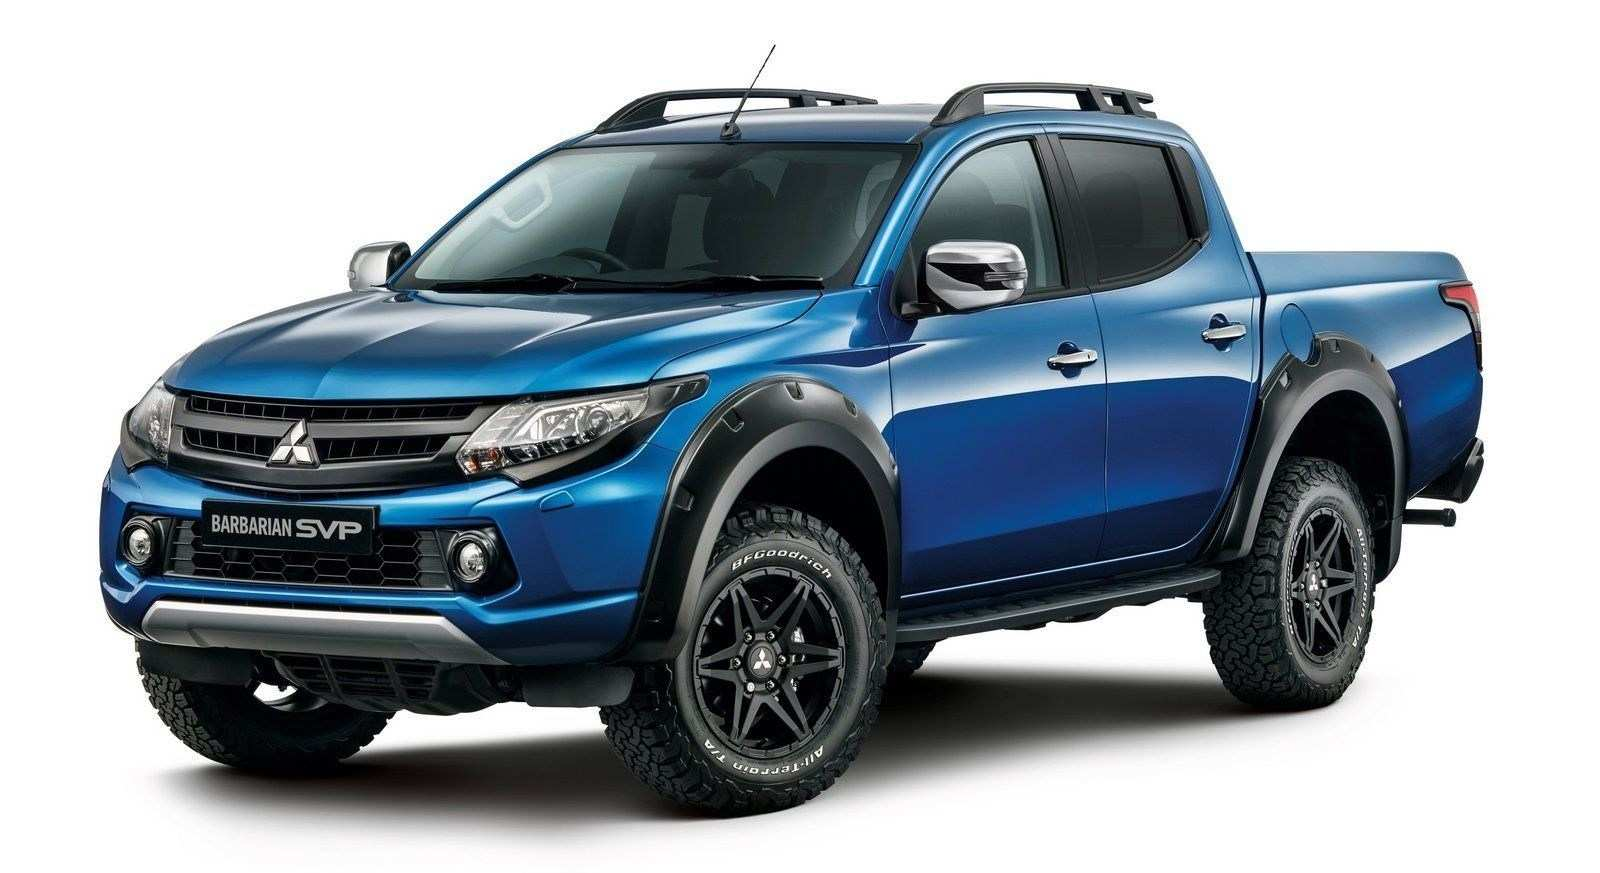 71 Gallery of 2019 Mitsubishi Triton Specs Reviews by 2019 Mitsubishi Triton Specs